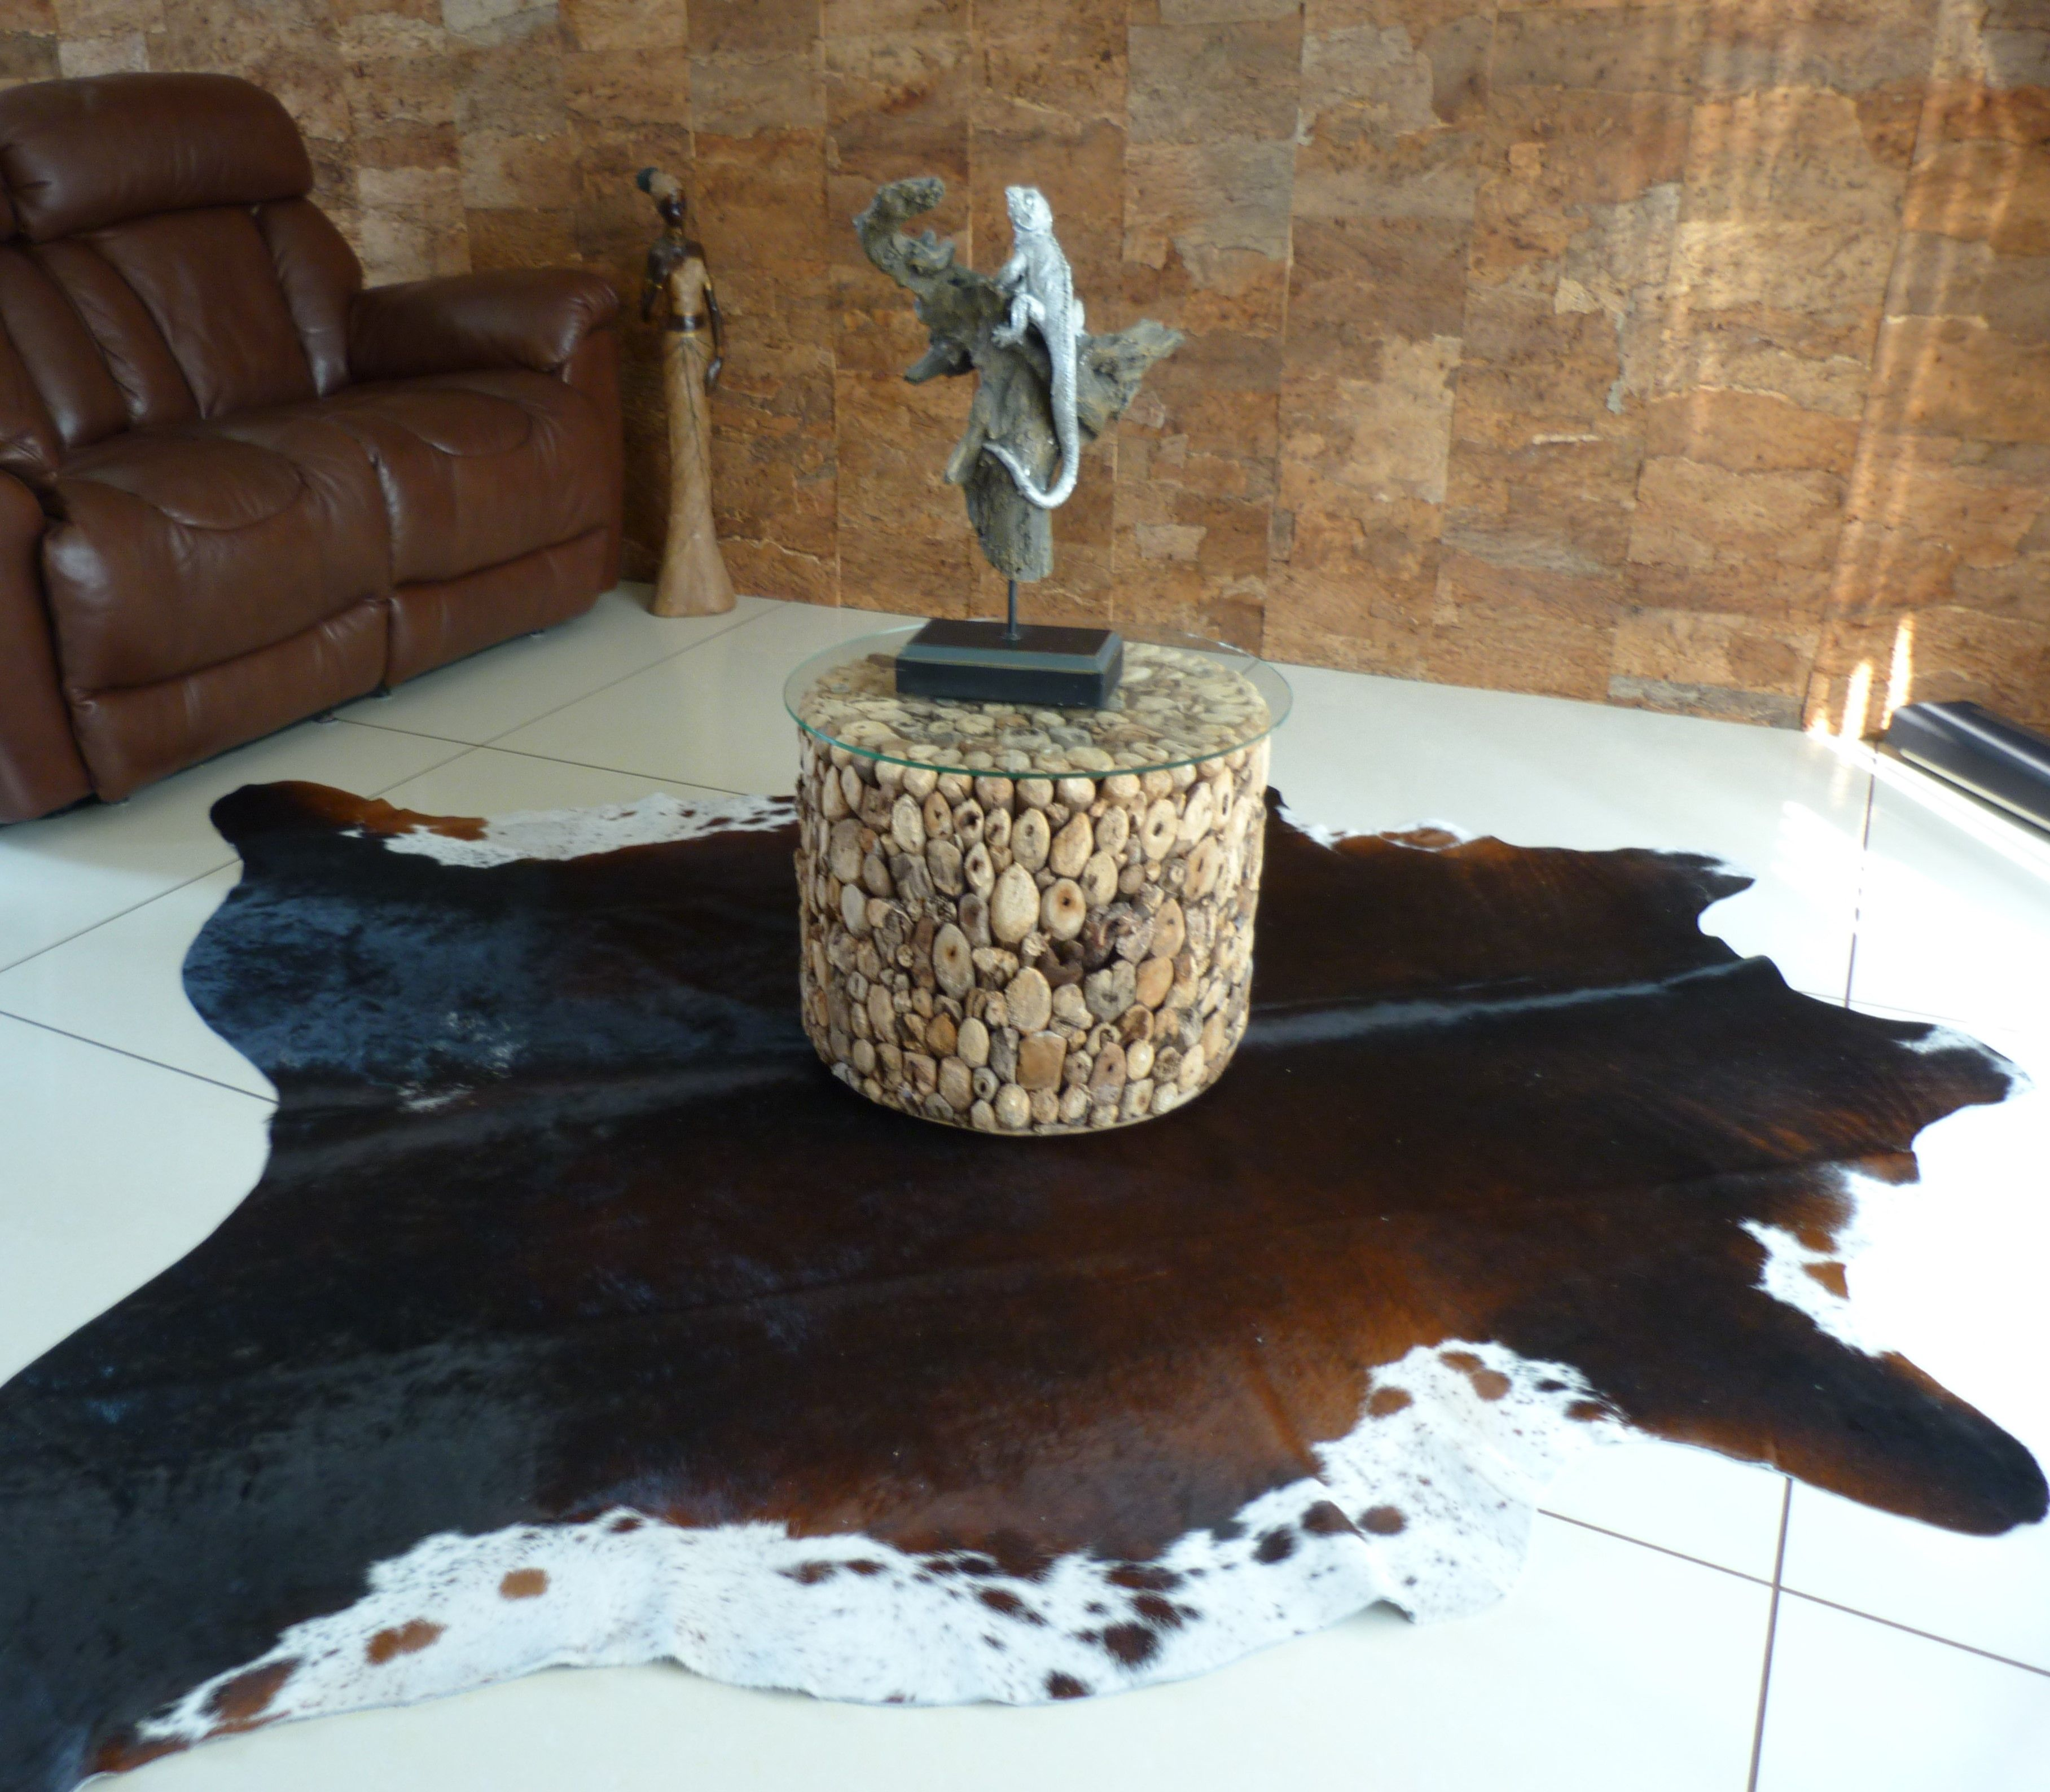 Beautiful Brazilian Cowhides From Hide Rugs Great Selection To Choose From To Make Your House Stunning Cow Hide Rug White Cowhide Rug Metallic Cowhide Rug